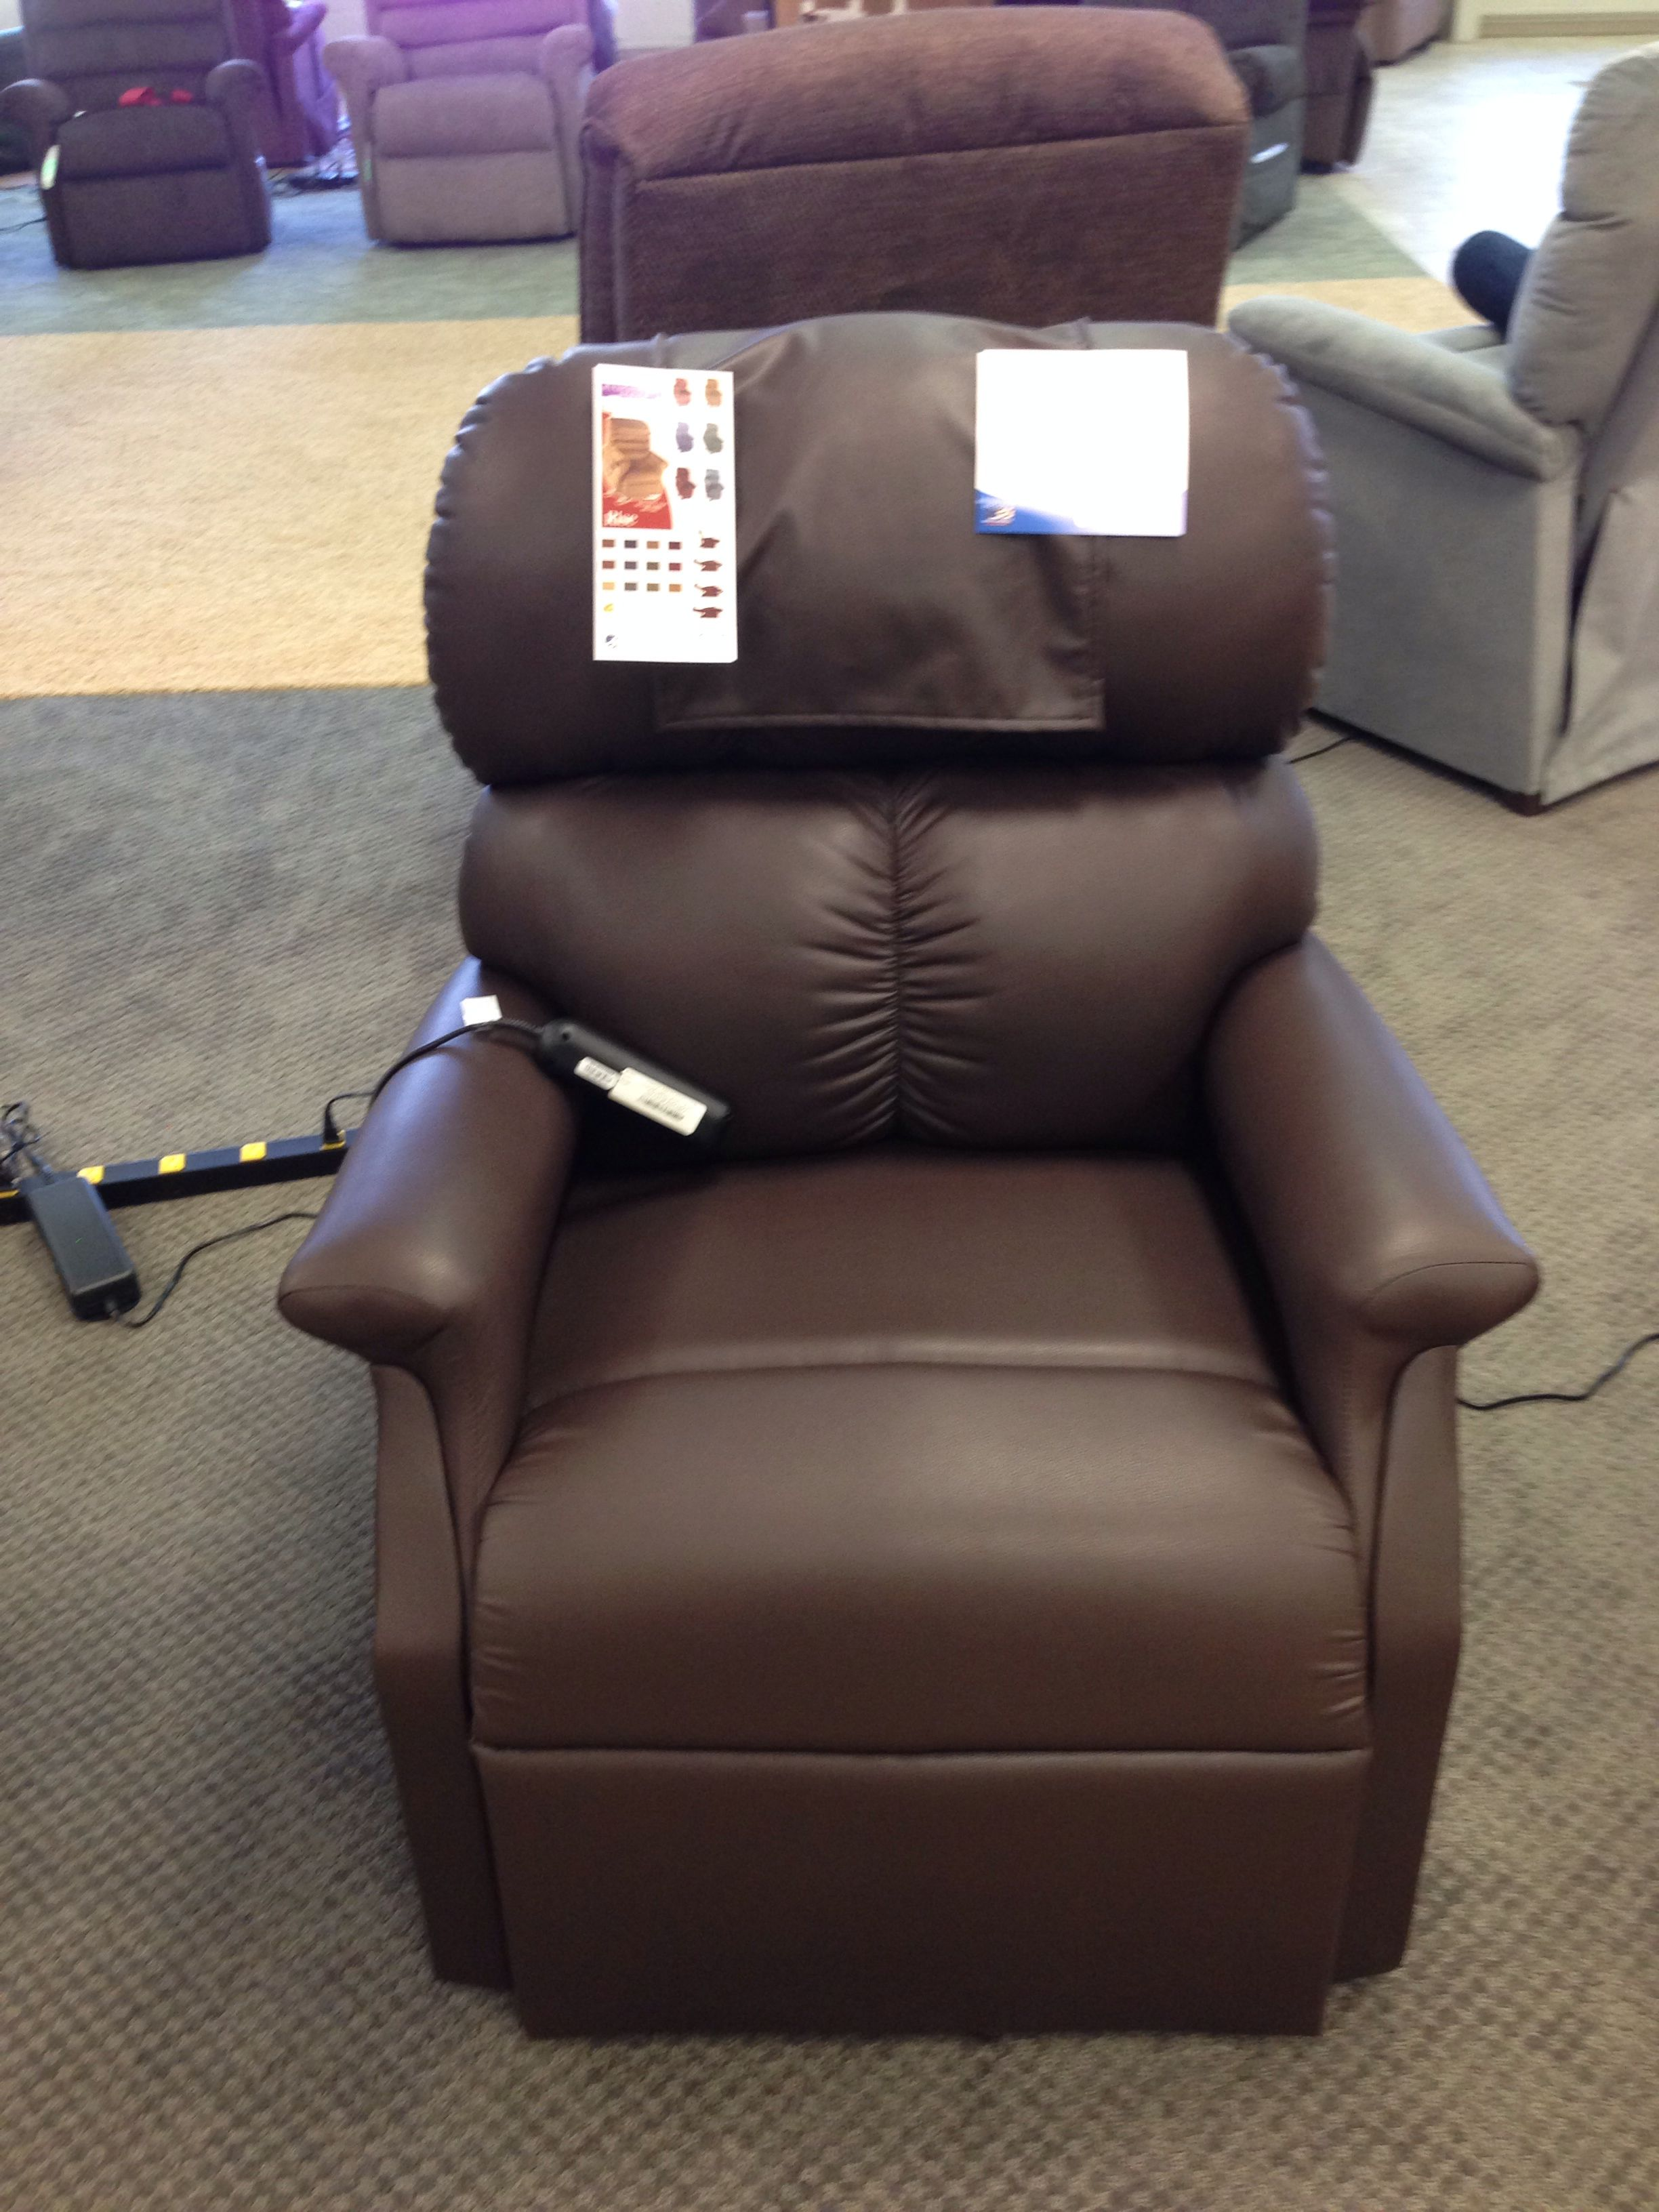 Golden pr535 comforter with lift chairs